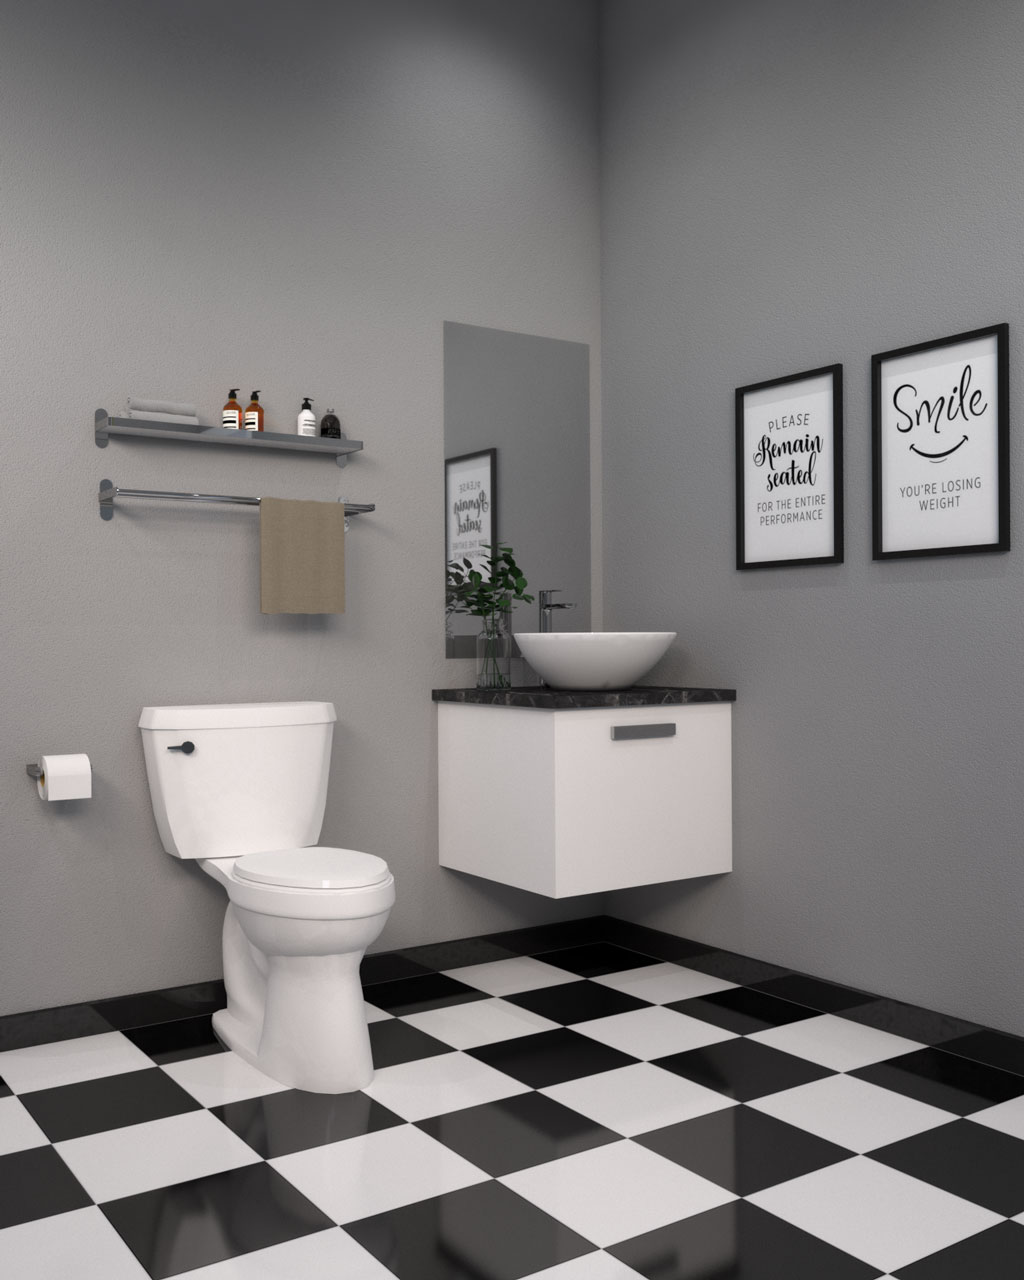 Black and white tile in bathroom with gray walls